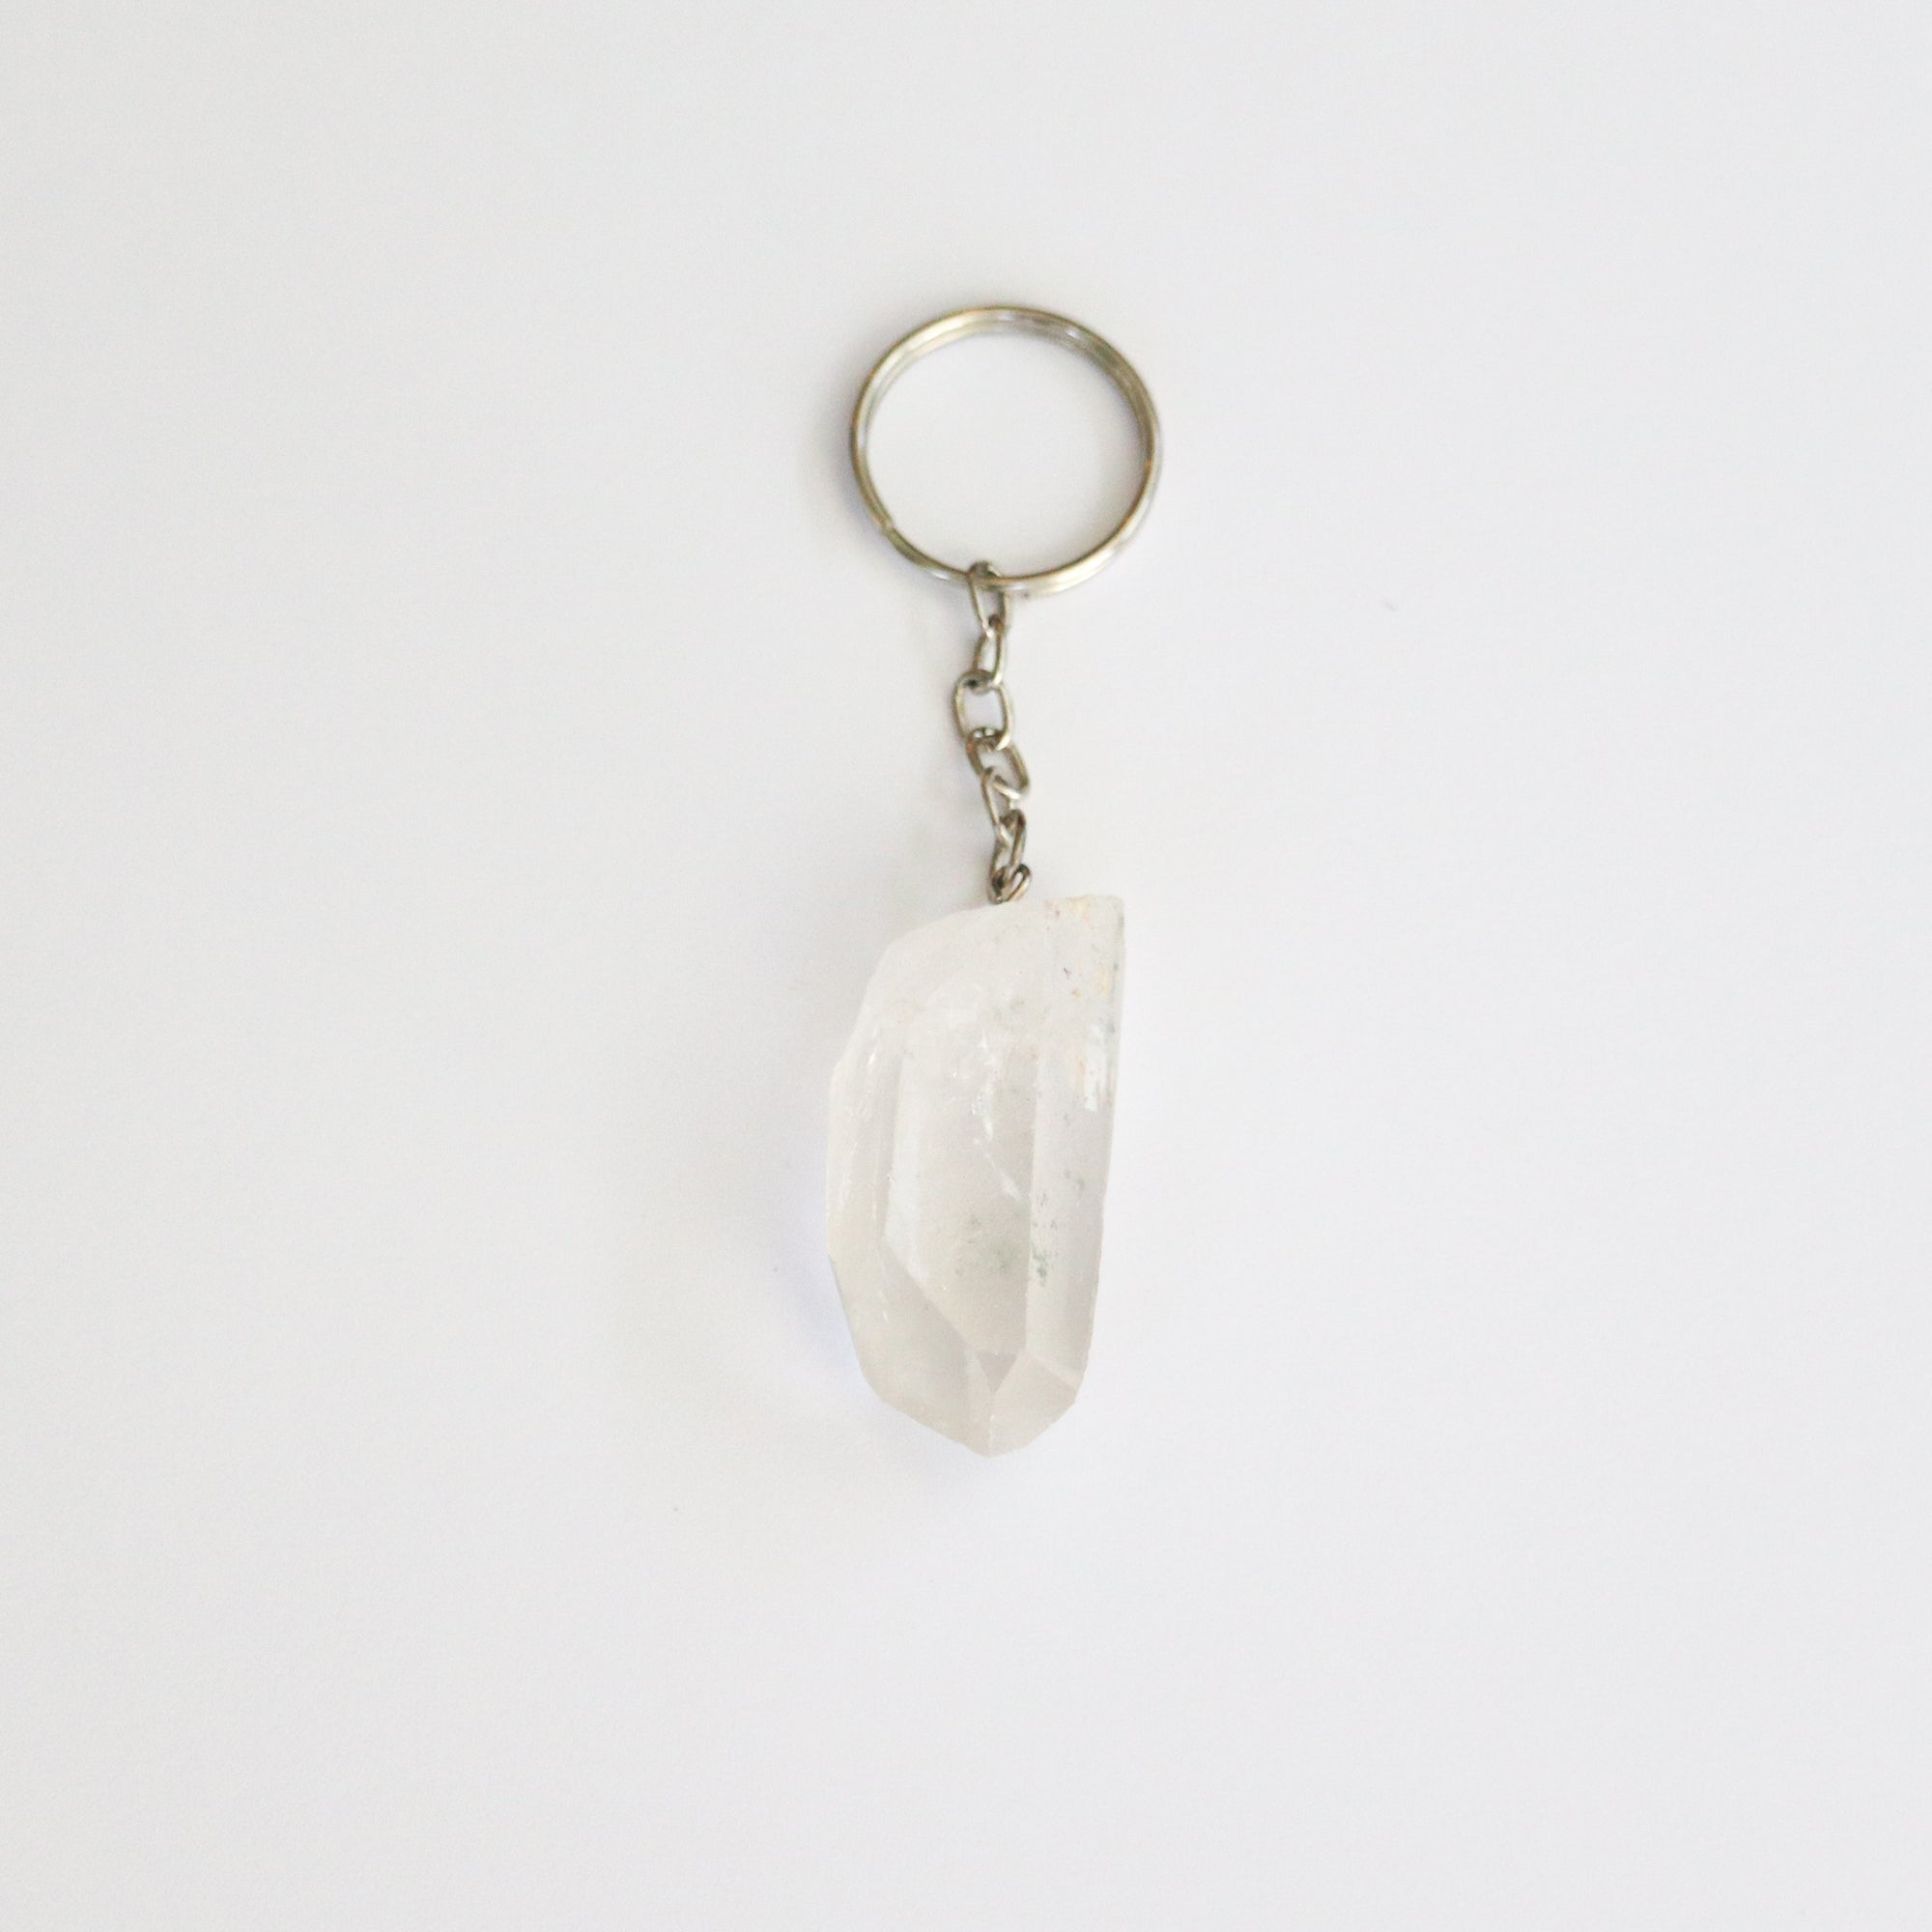 Clear Quartz Keychain